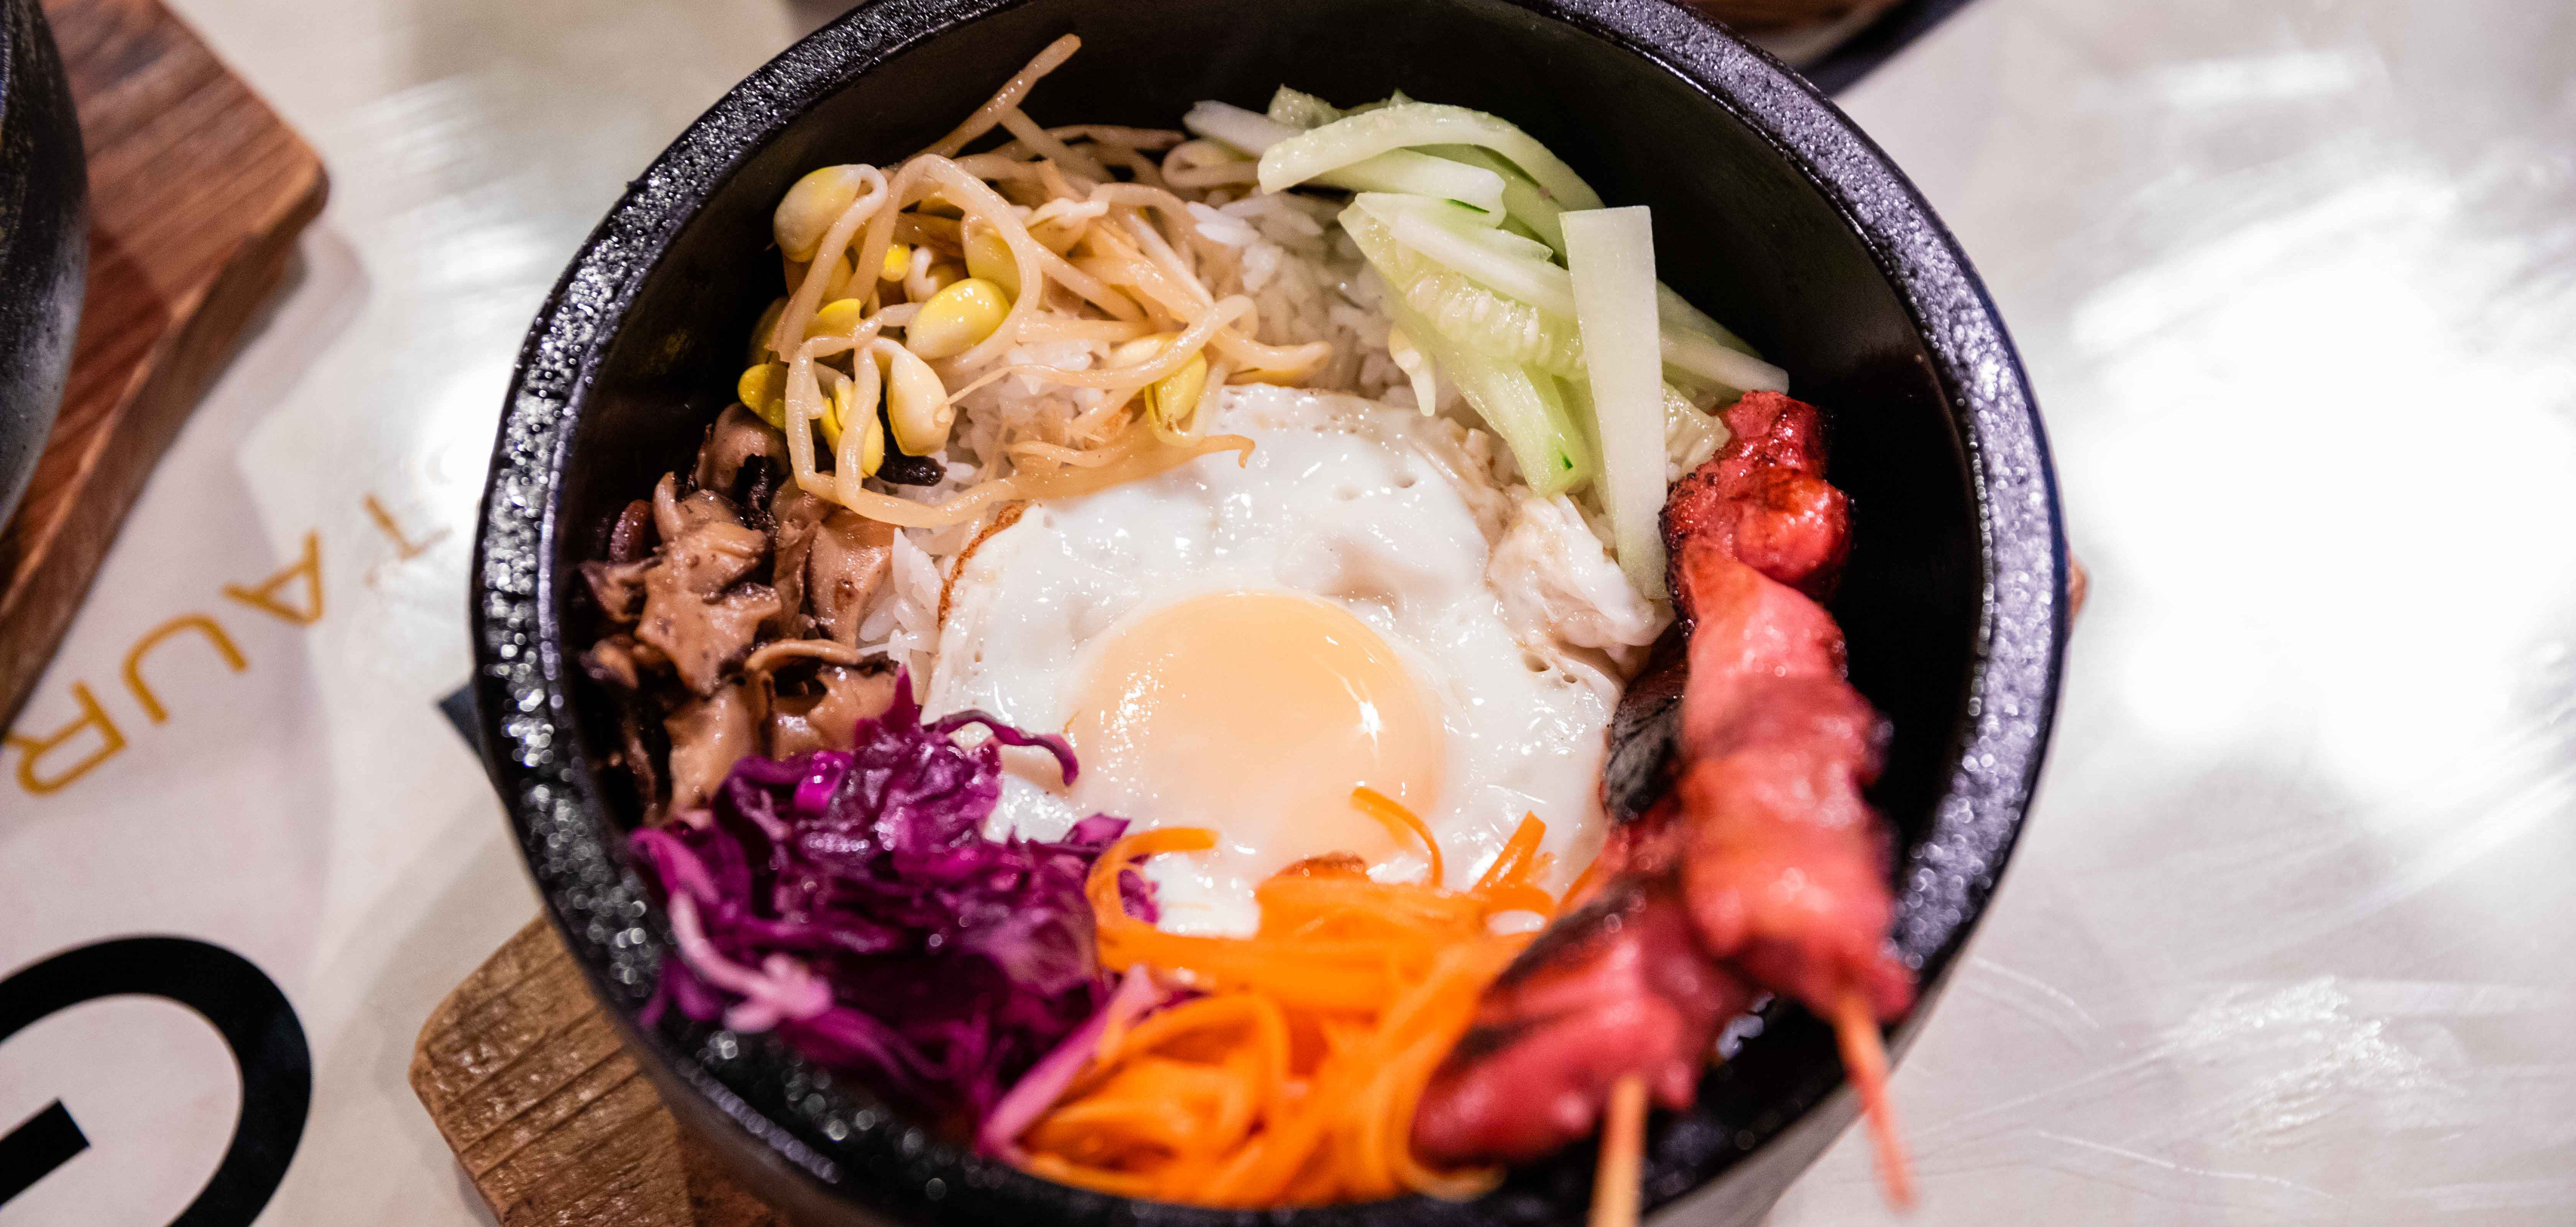 A bibimbap rice bowl at Gogi Gui in East Tulsa topped with a fried egg